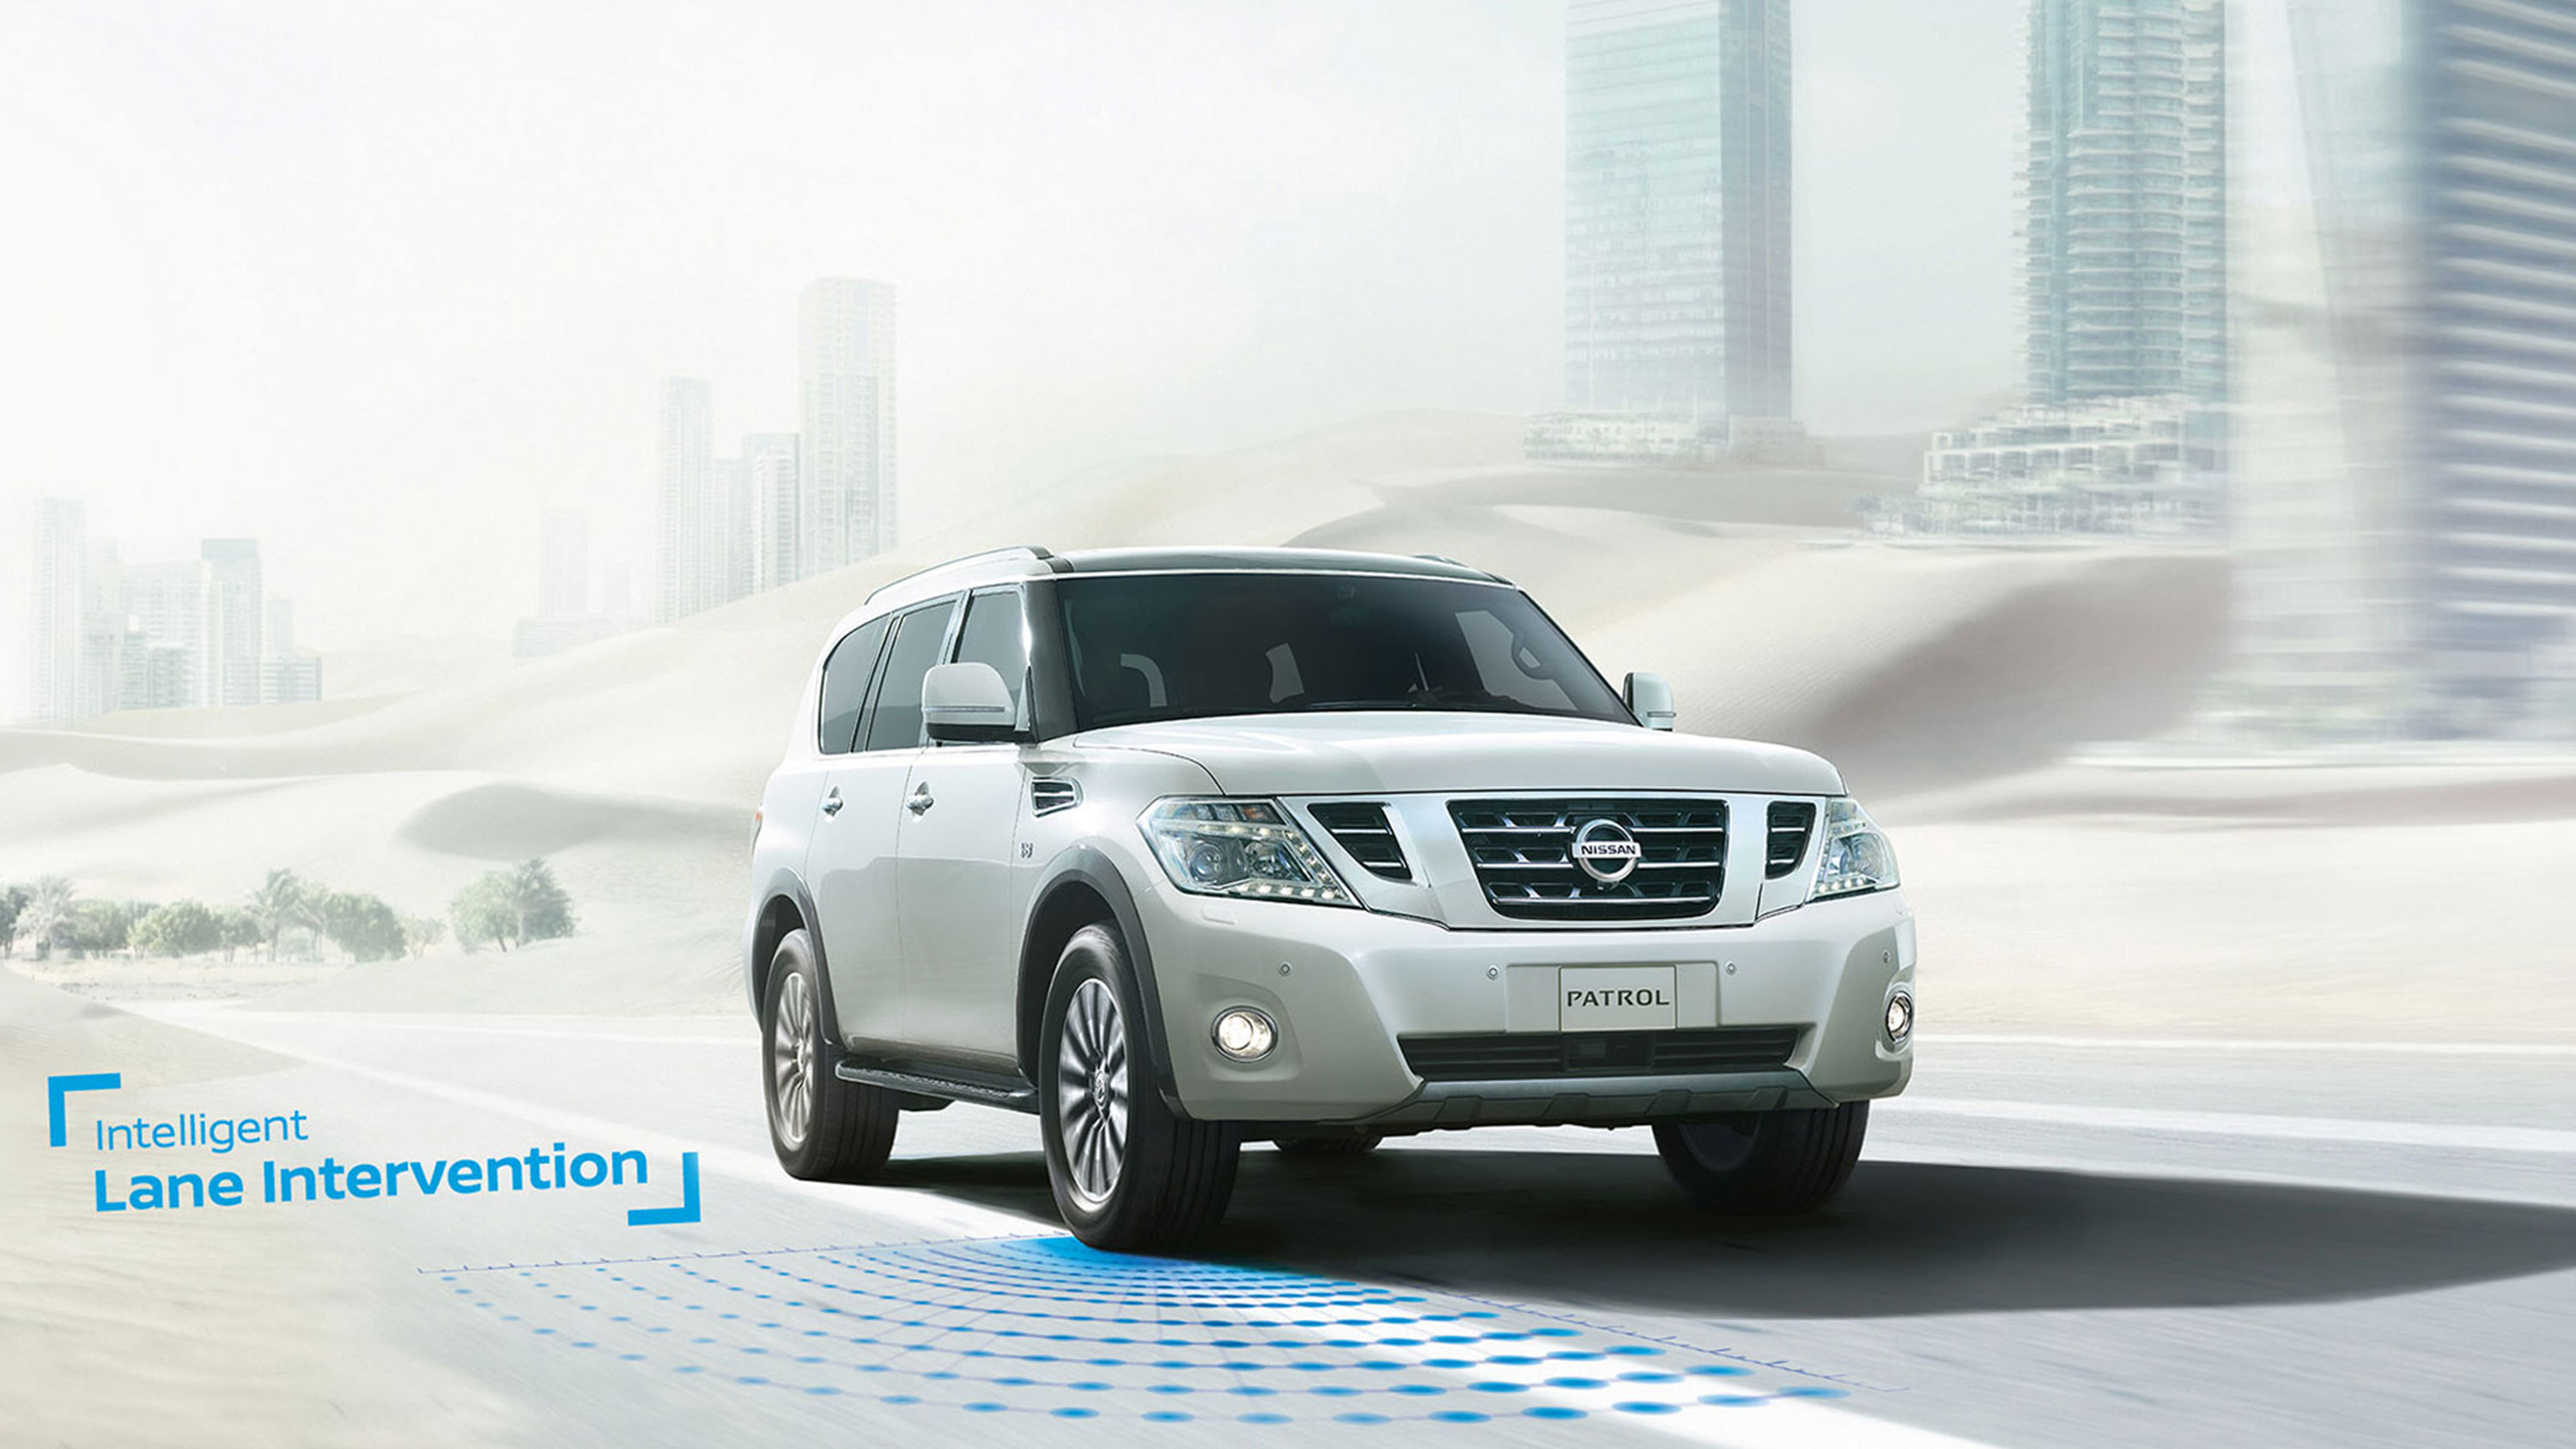 2019 Nissan Patrol V8 Editions 4wd Suv For Off Road Adventures Nissan Dubai